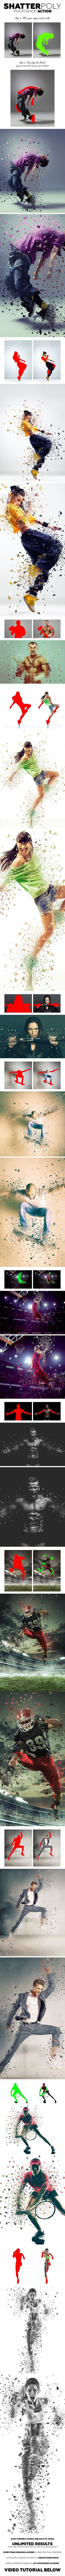 ShatterPoly Photoshop Action - Photo Effects Actions